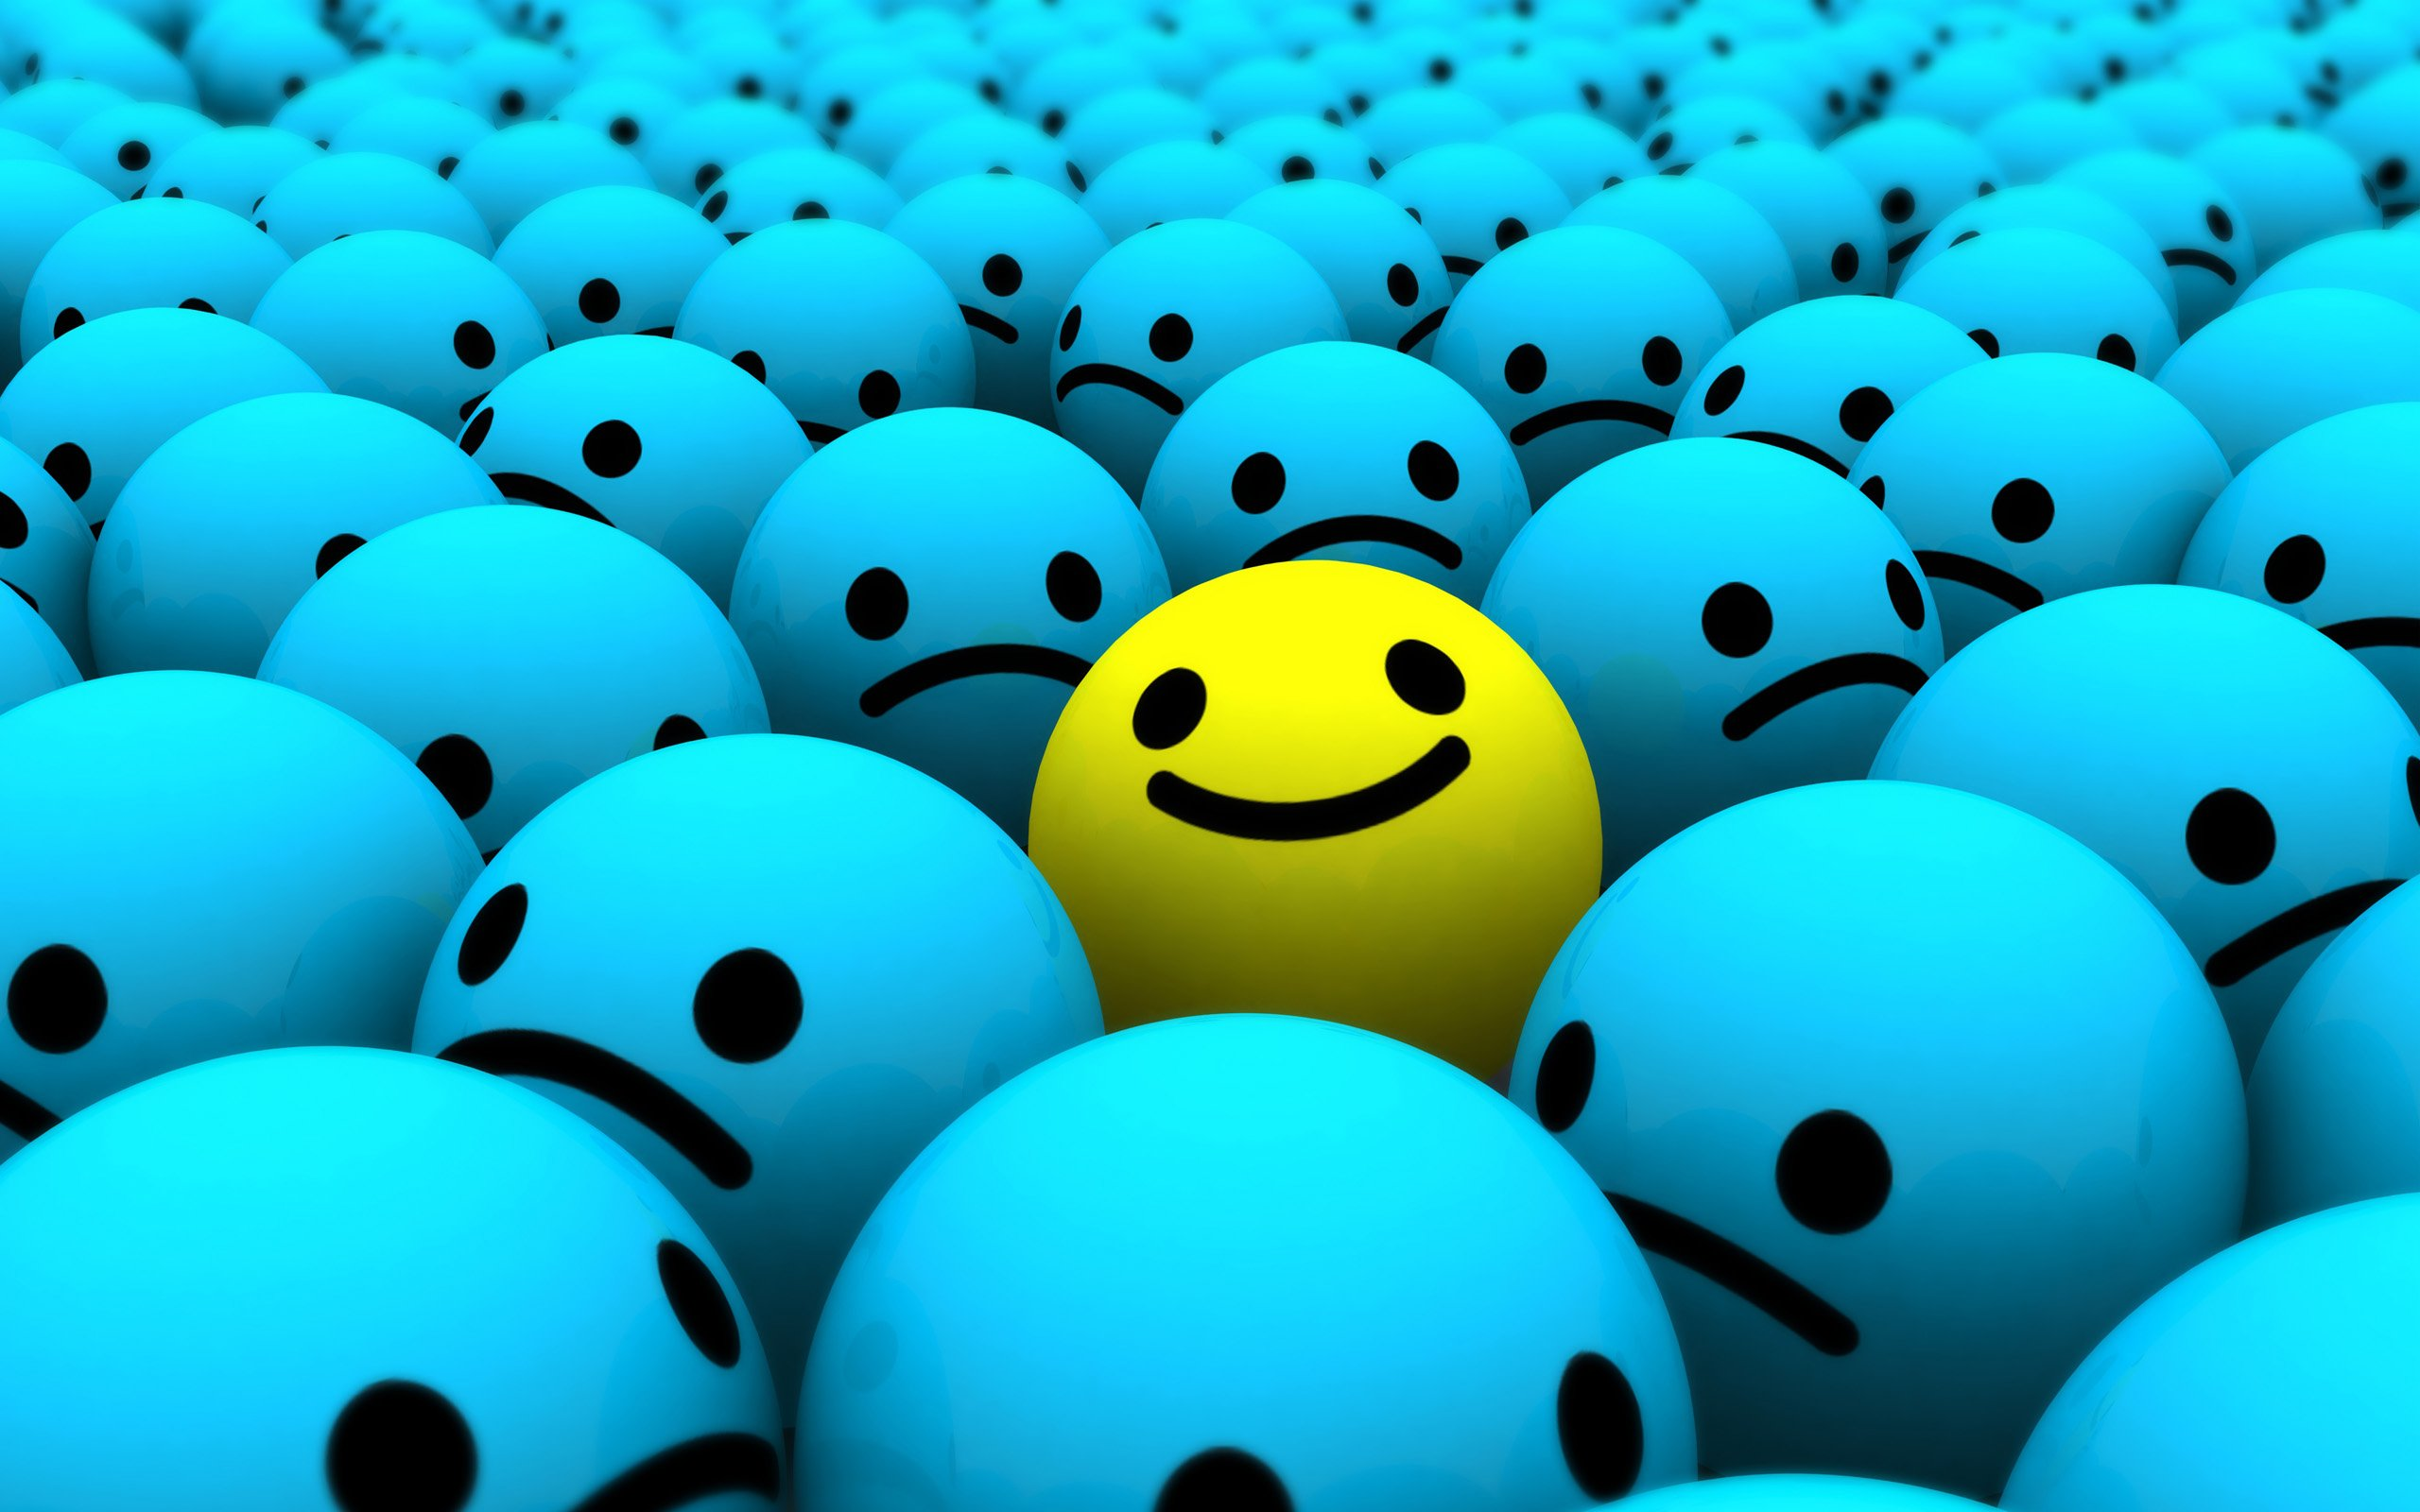 Smiley Faces Exclusive HD Wallpapers 1823 2560x1600